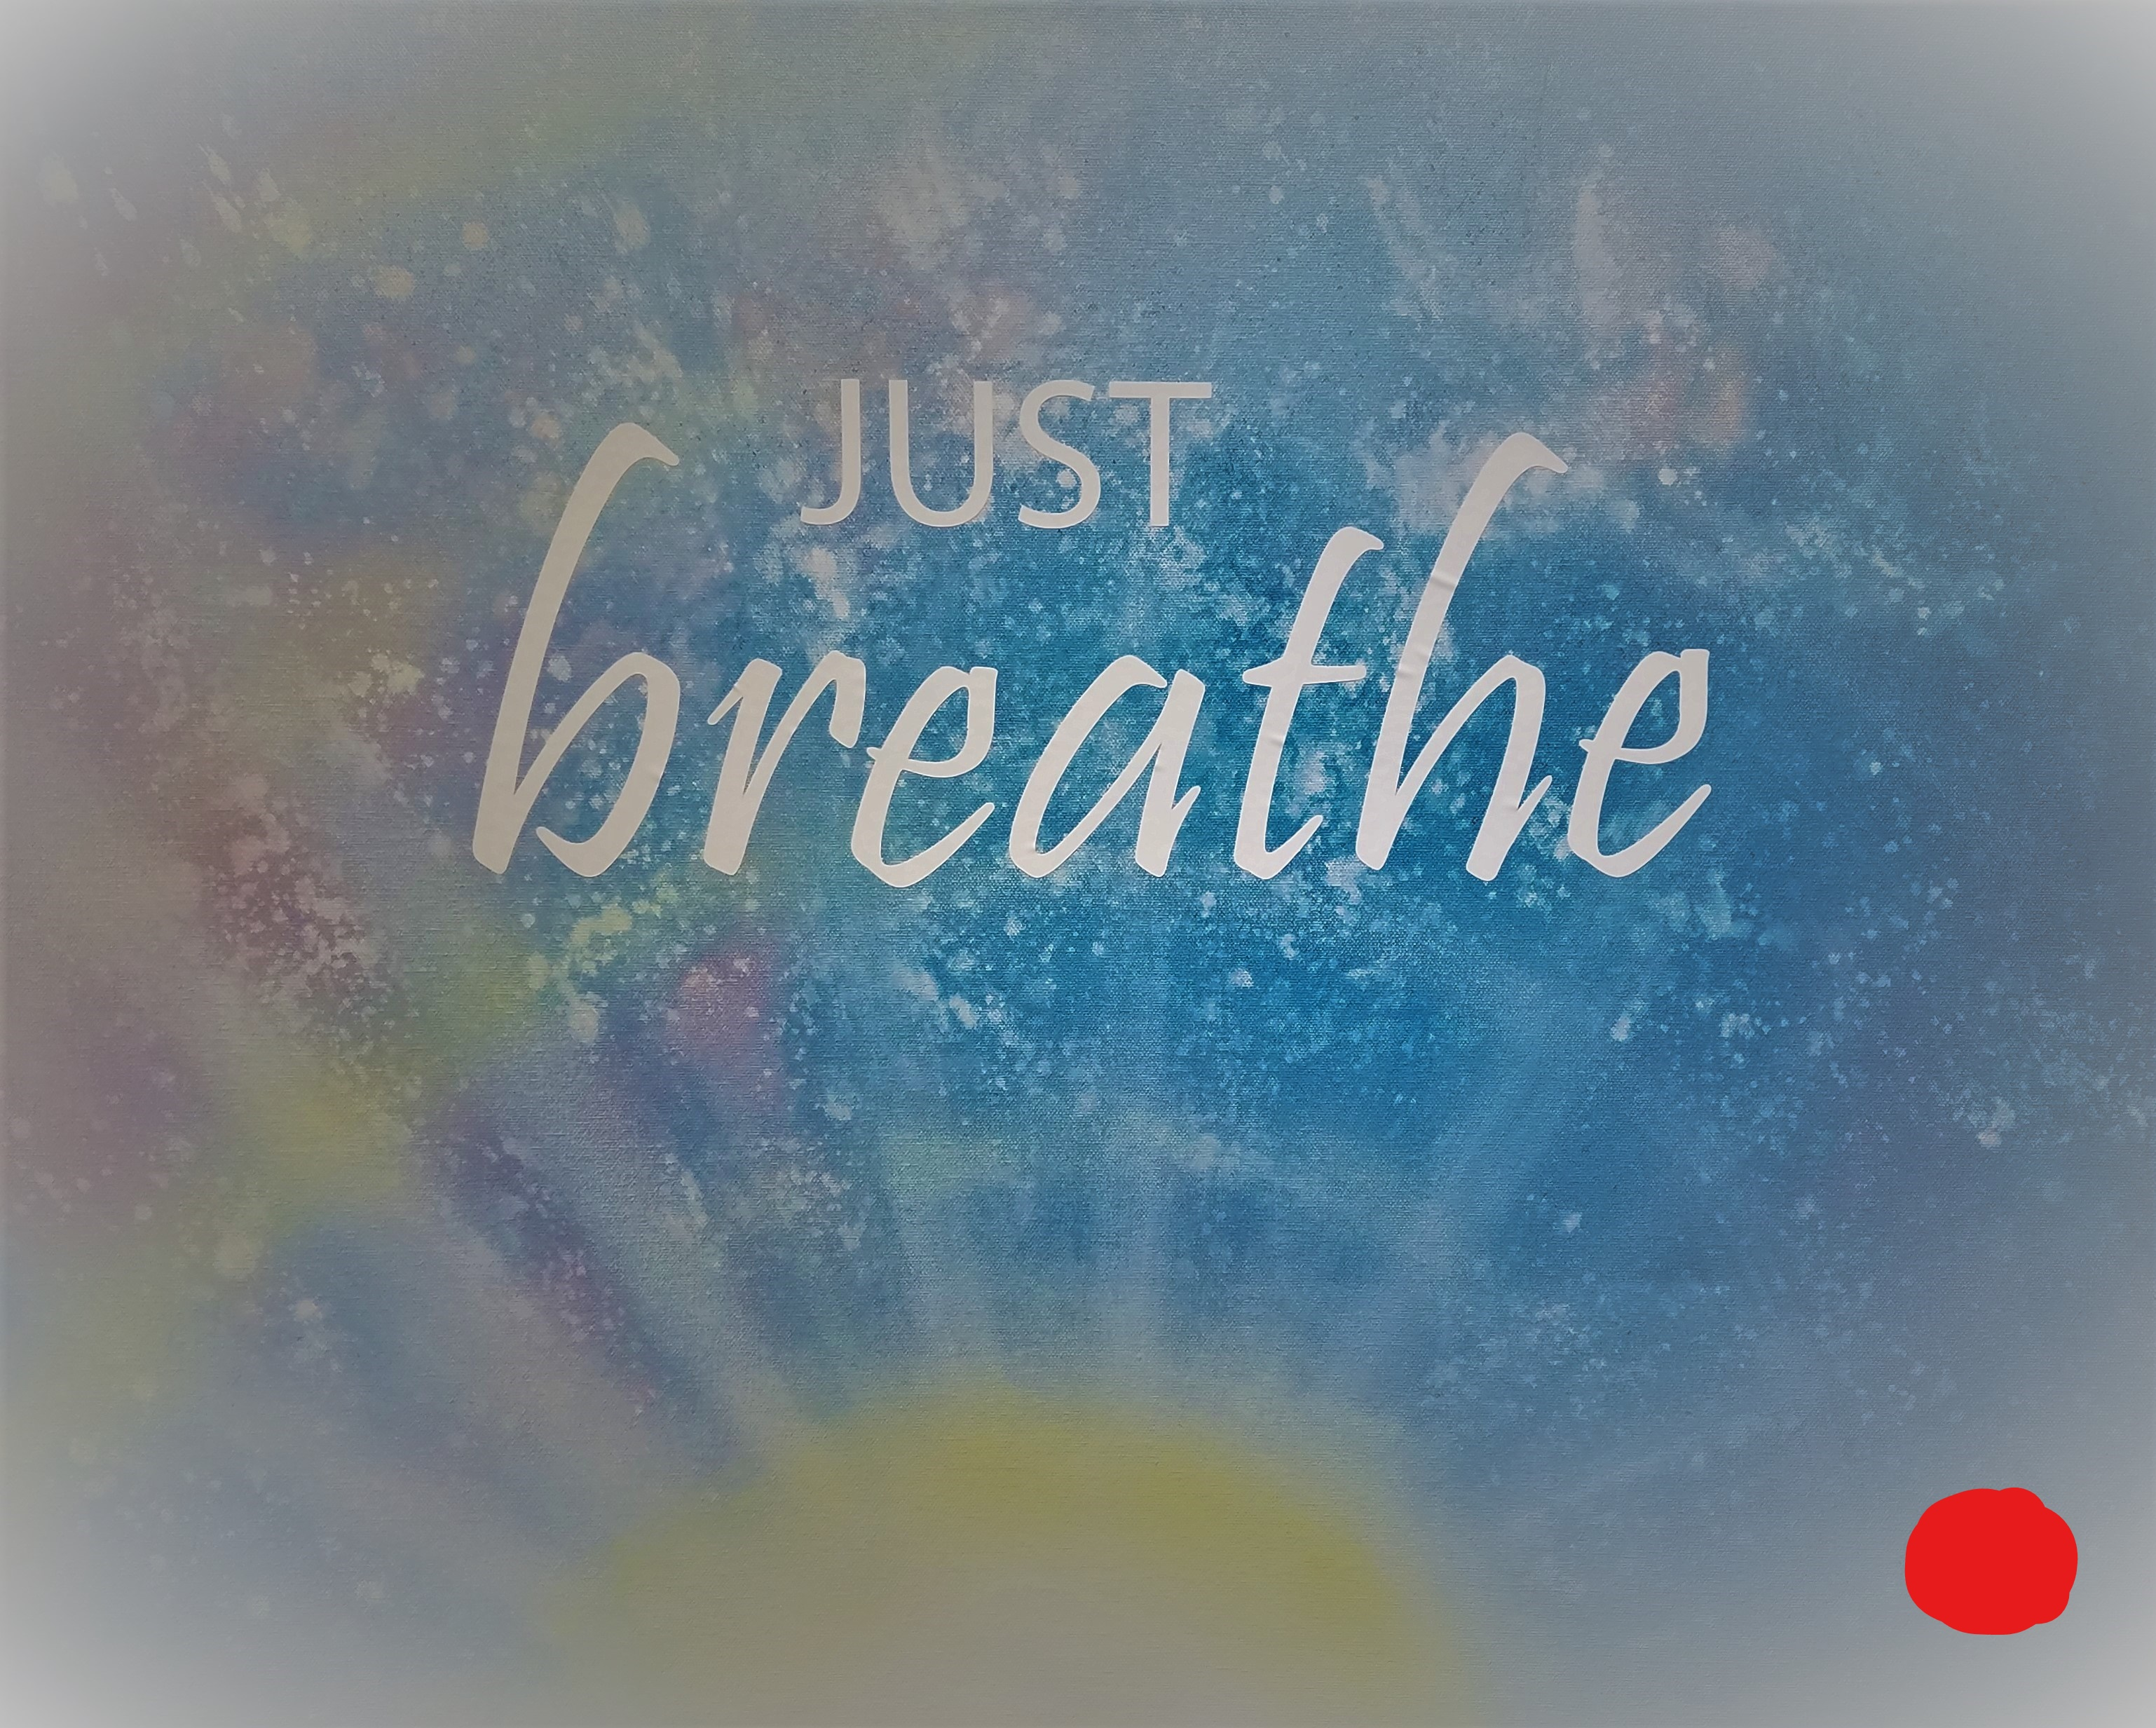 Just Breathe (3)_LI